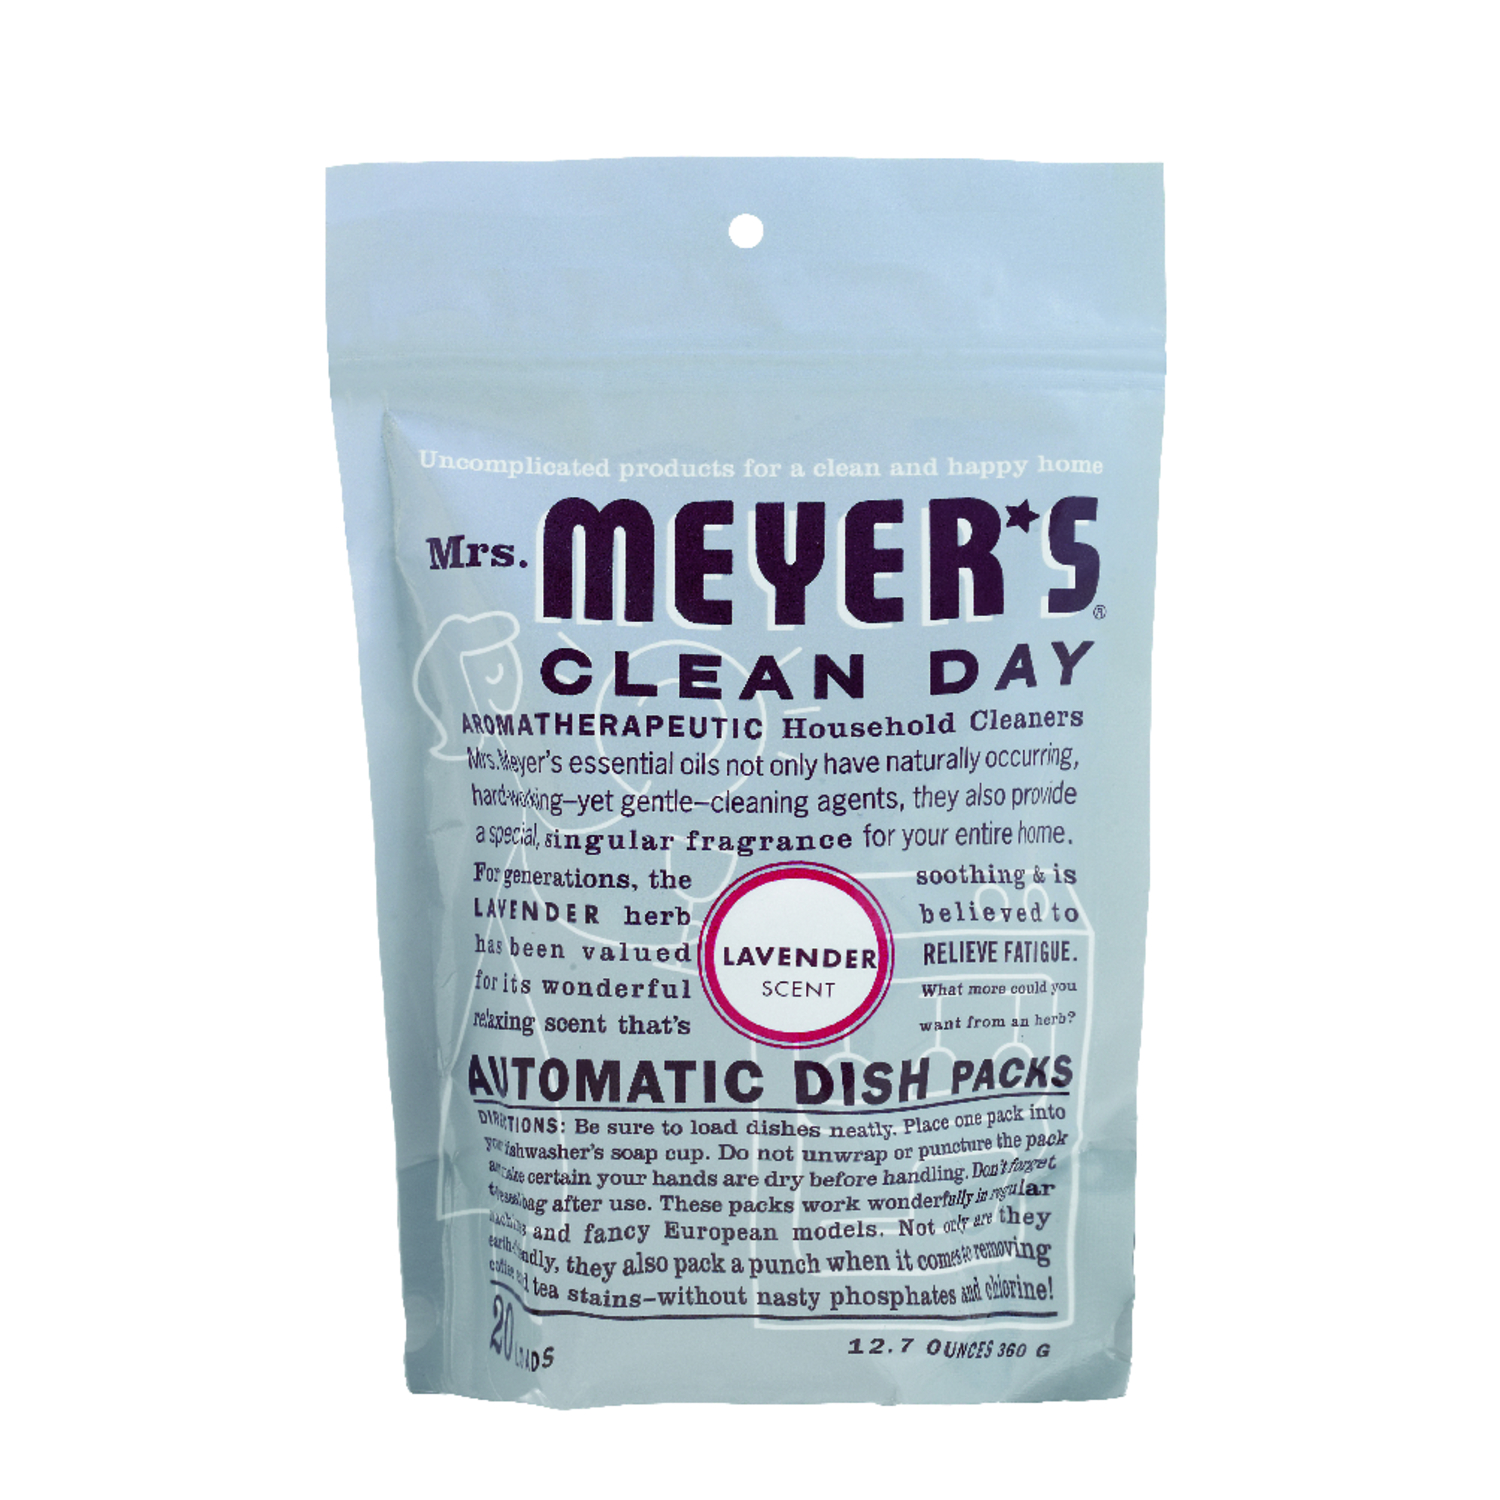 Mrs. Meyer's  Lavender Scent Powder  Dishwasher Detergent  12.7 oz. 20 pk